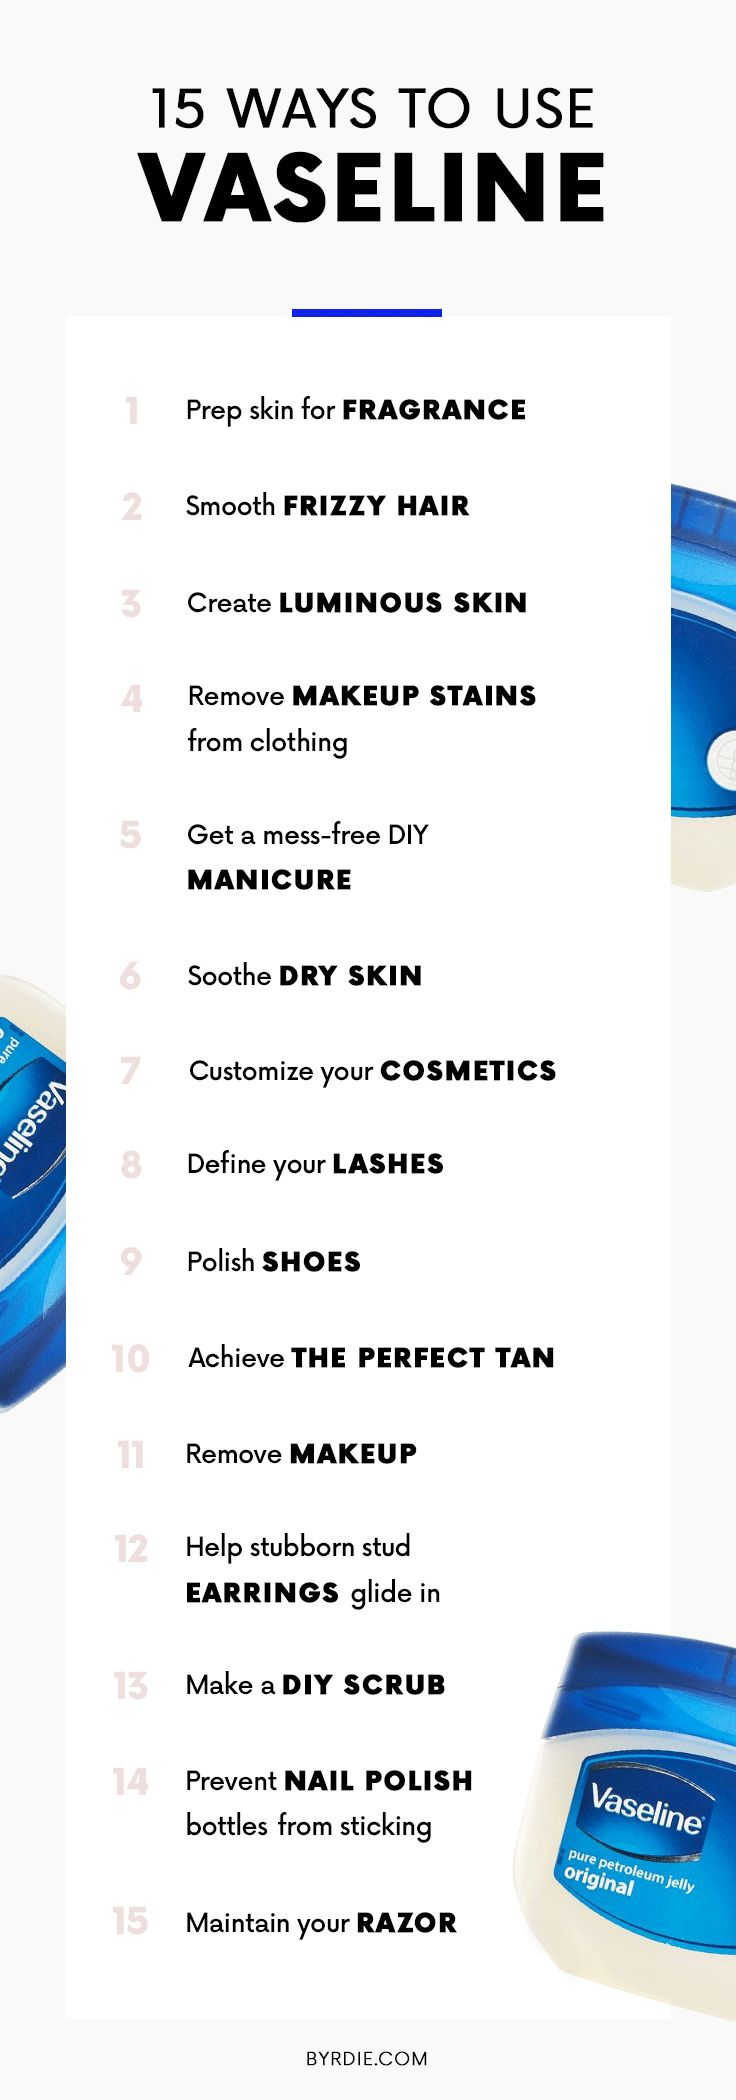 Amazing ways to use Vaseline in your every day life